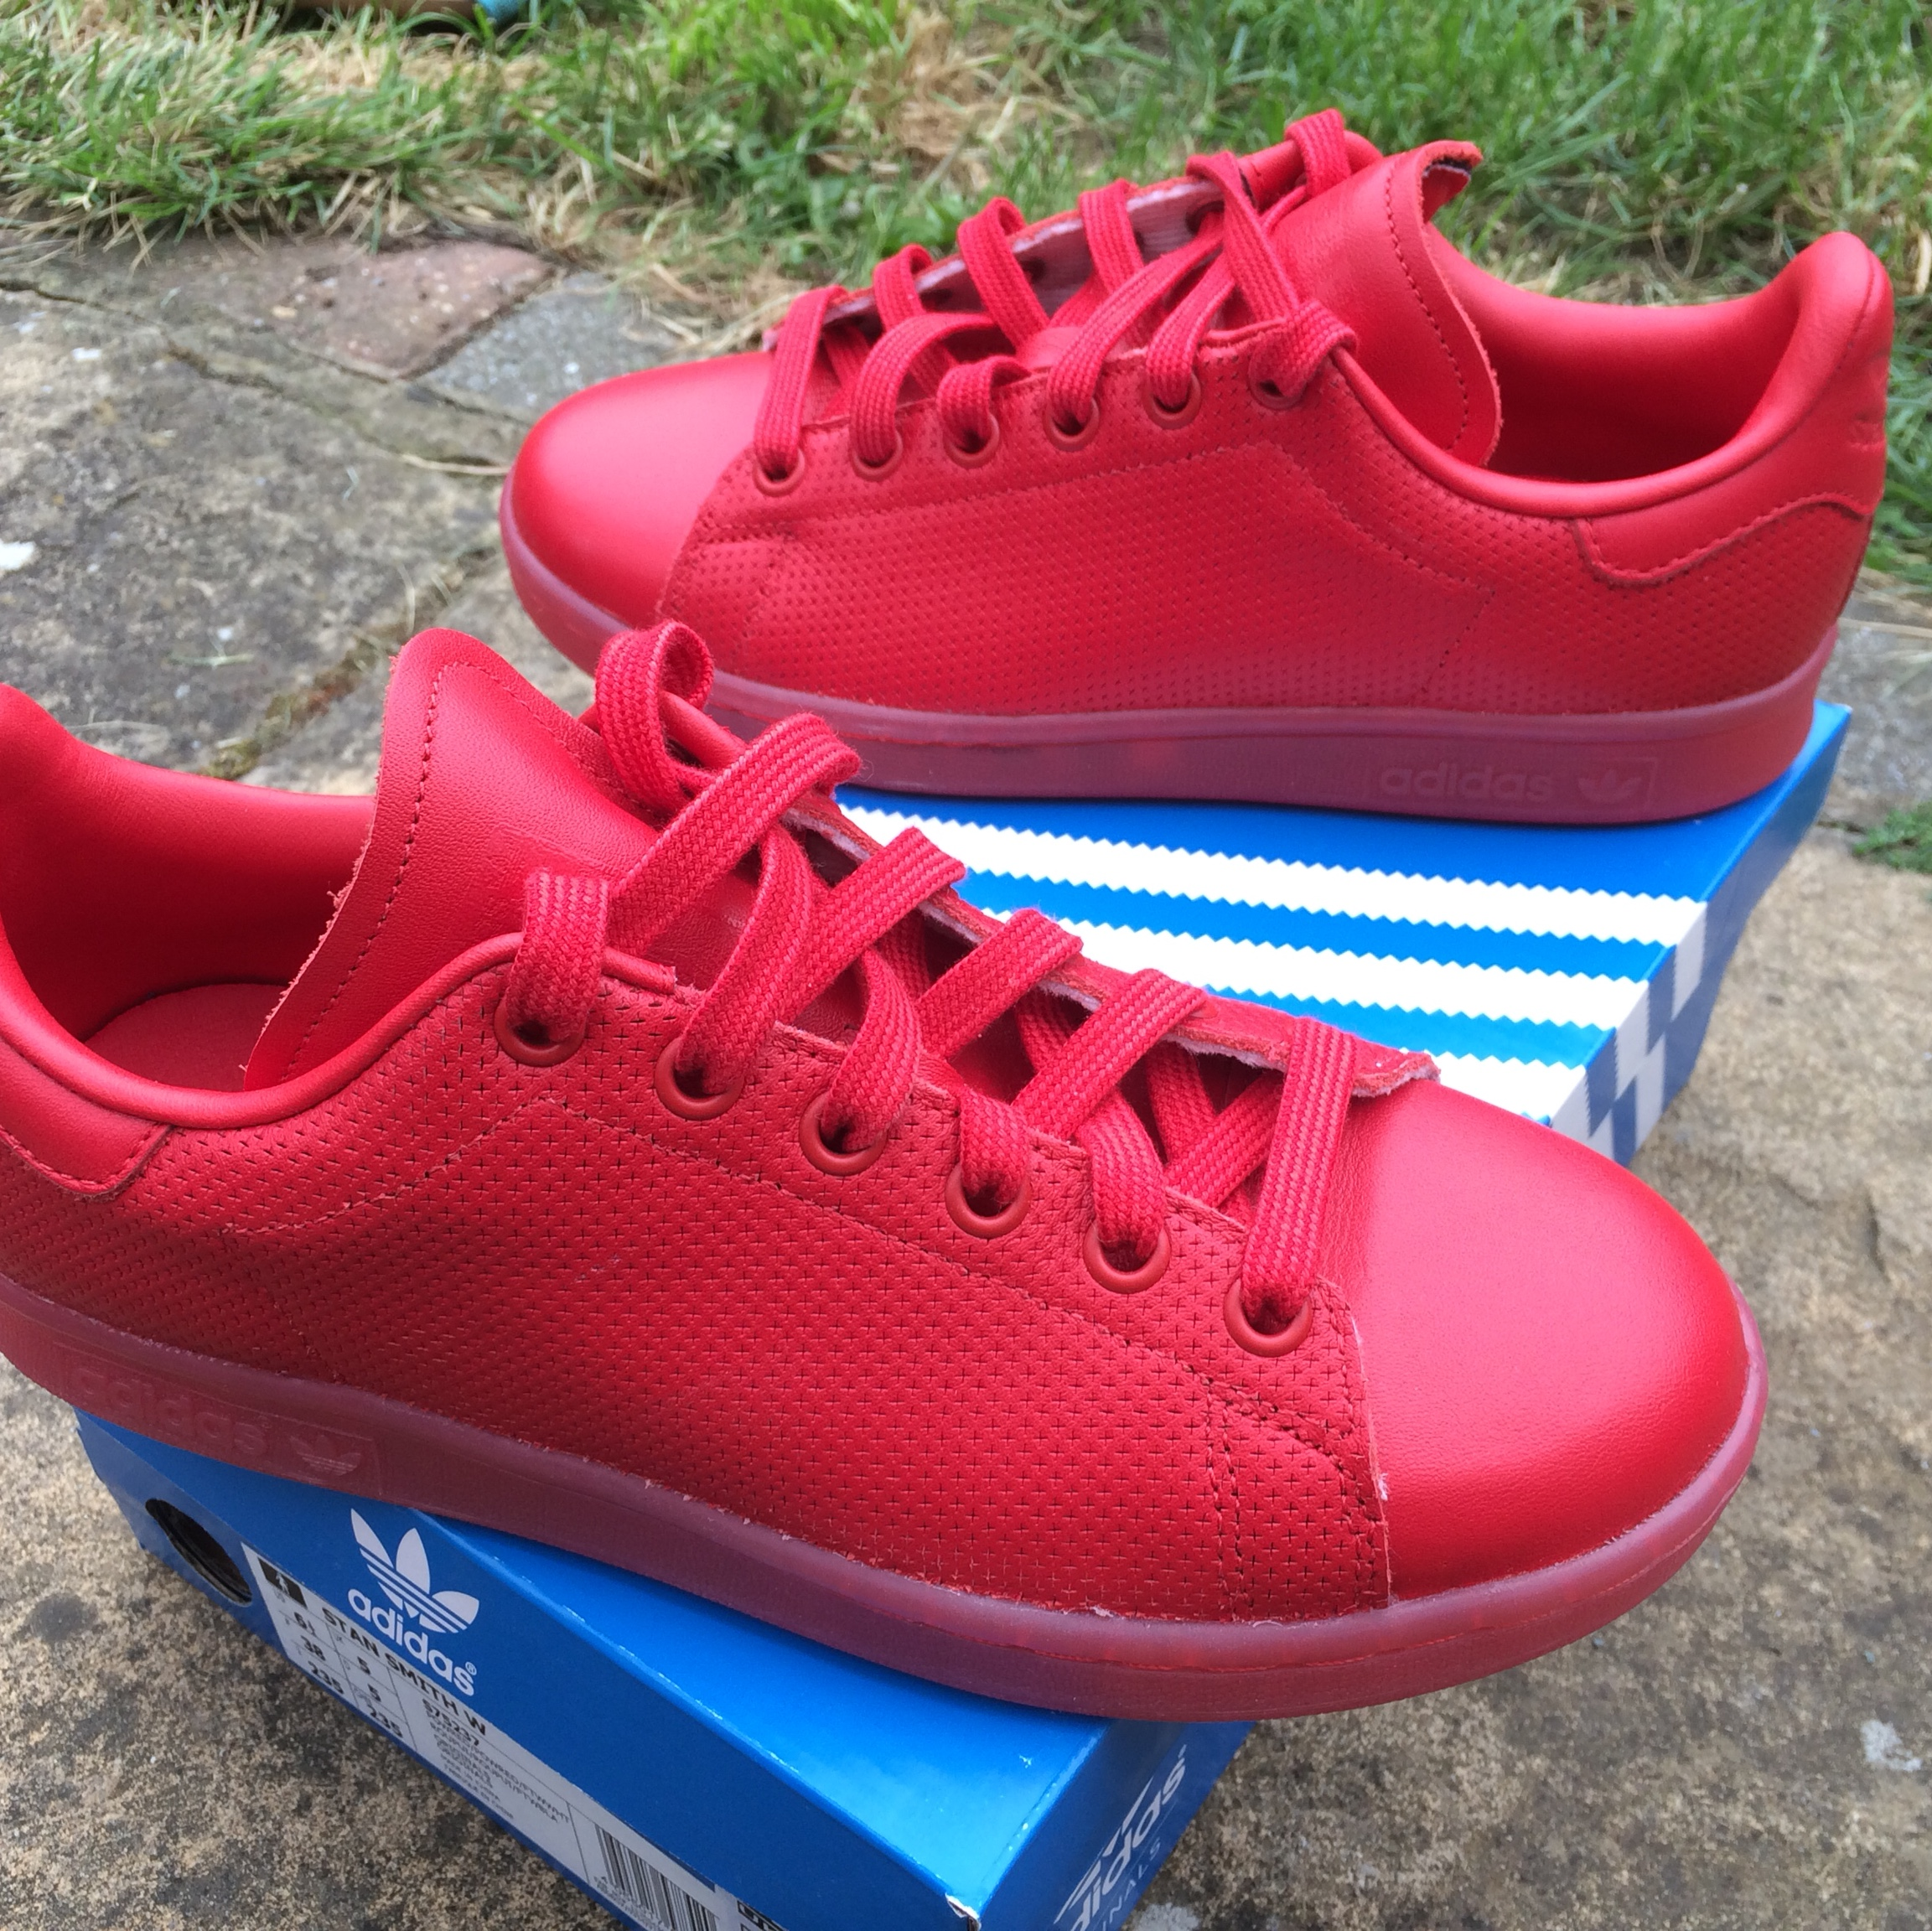 Adidas Stan Smith adicolor women's red trainers euro Depop